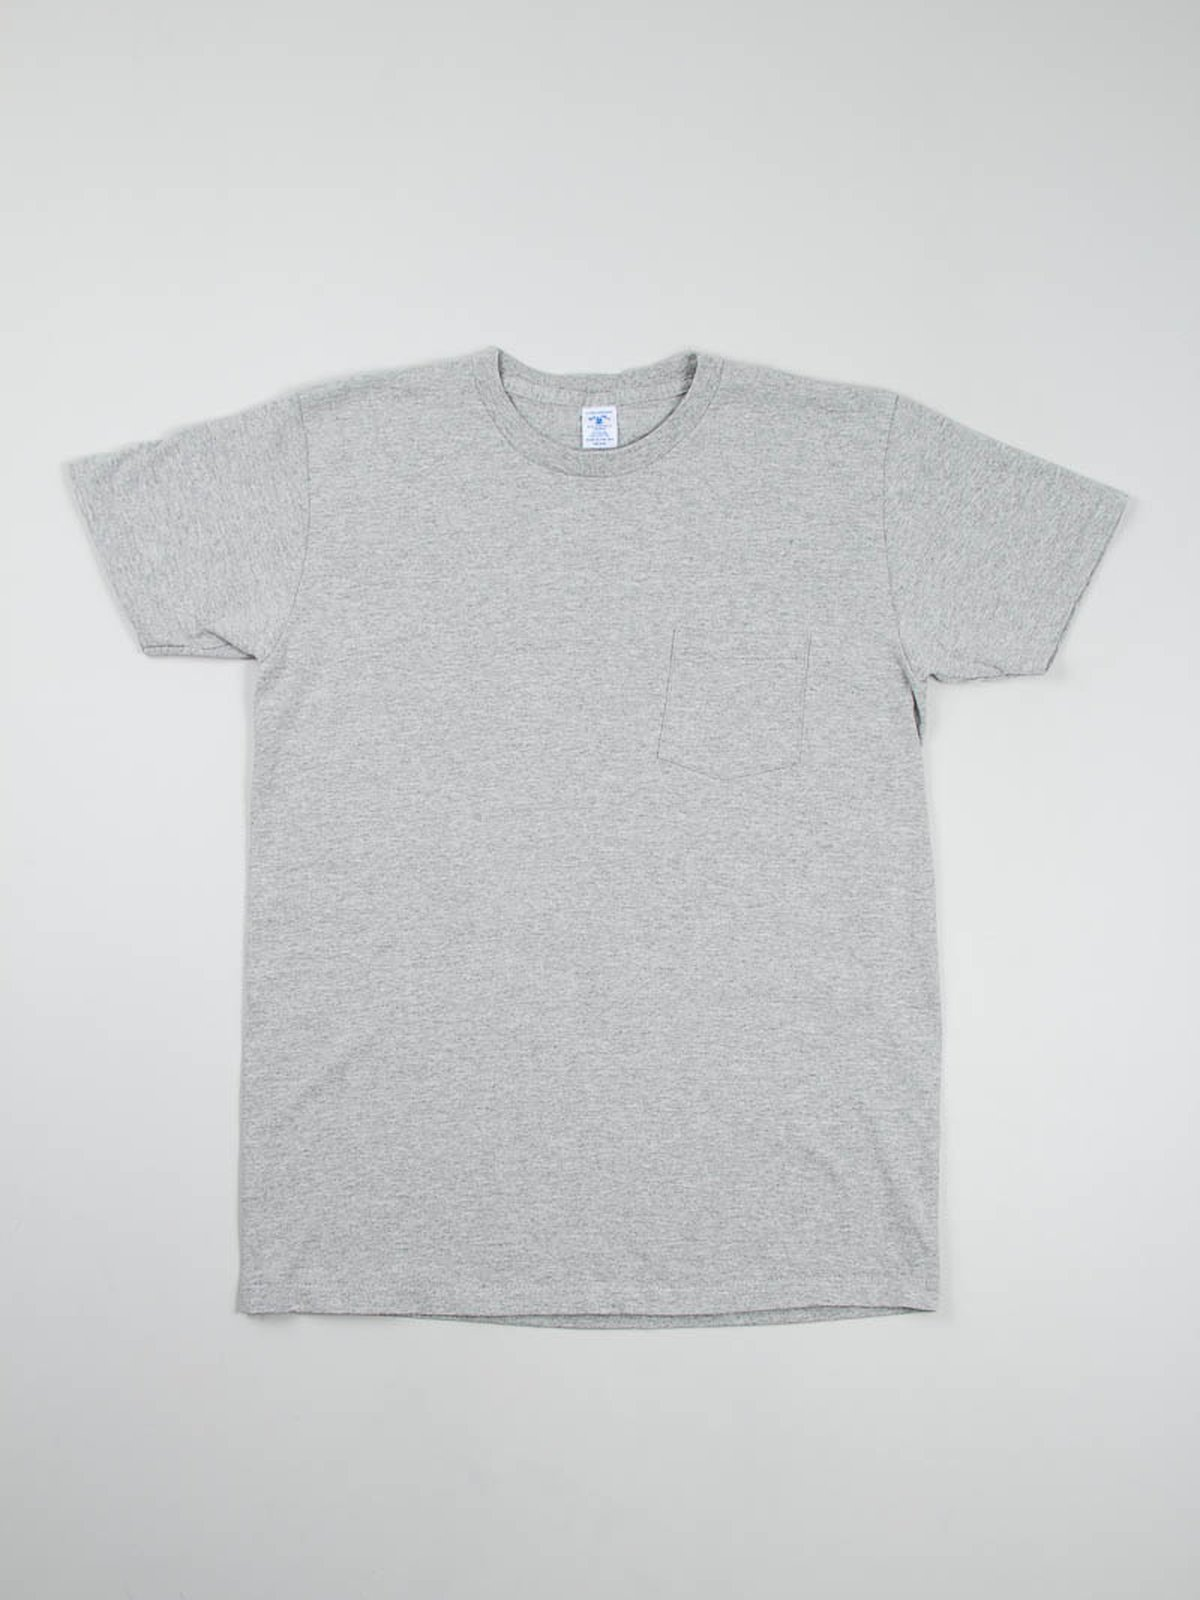 White/Heather Grey 2–Pac Pocket Tees - Image 2